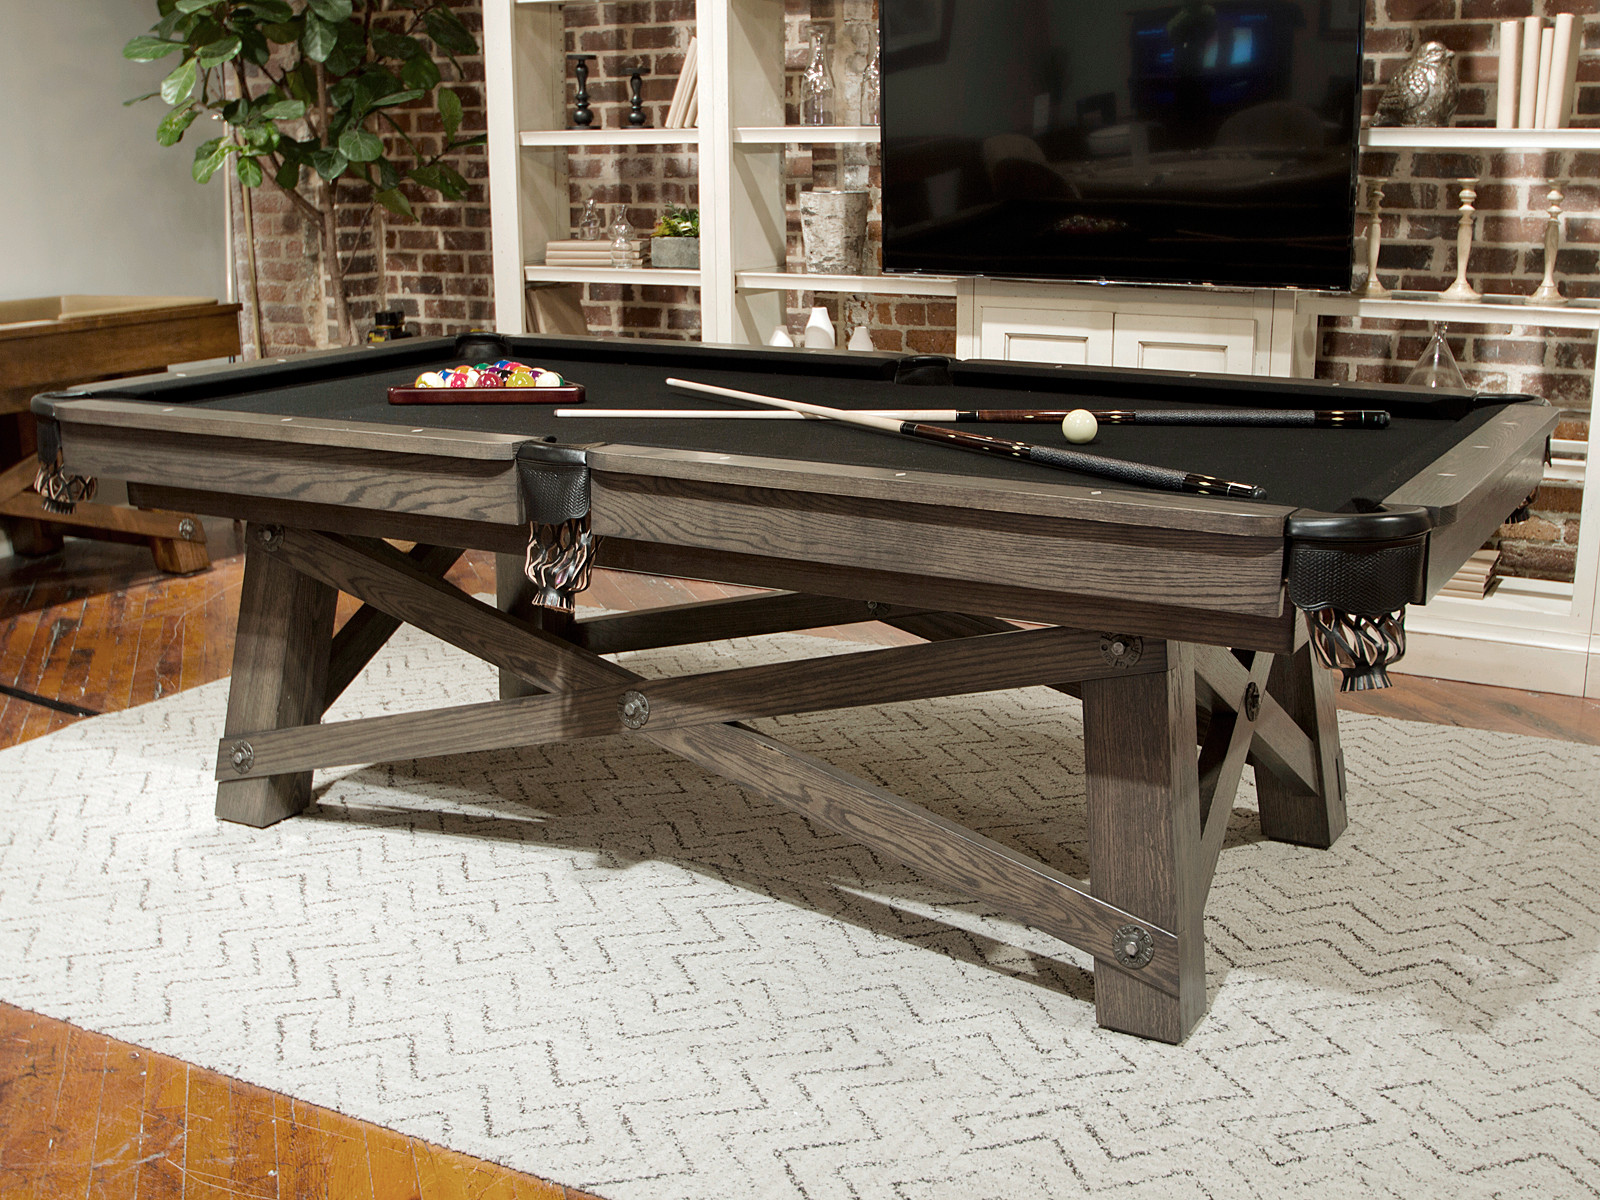 Loft pool table by california house pool table game rooms connelly billiards scottsdale az - Pool table house ...